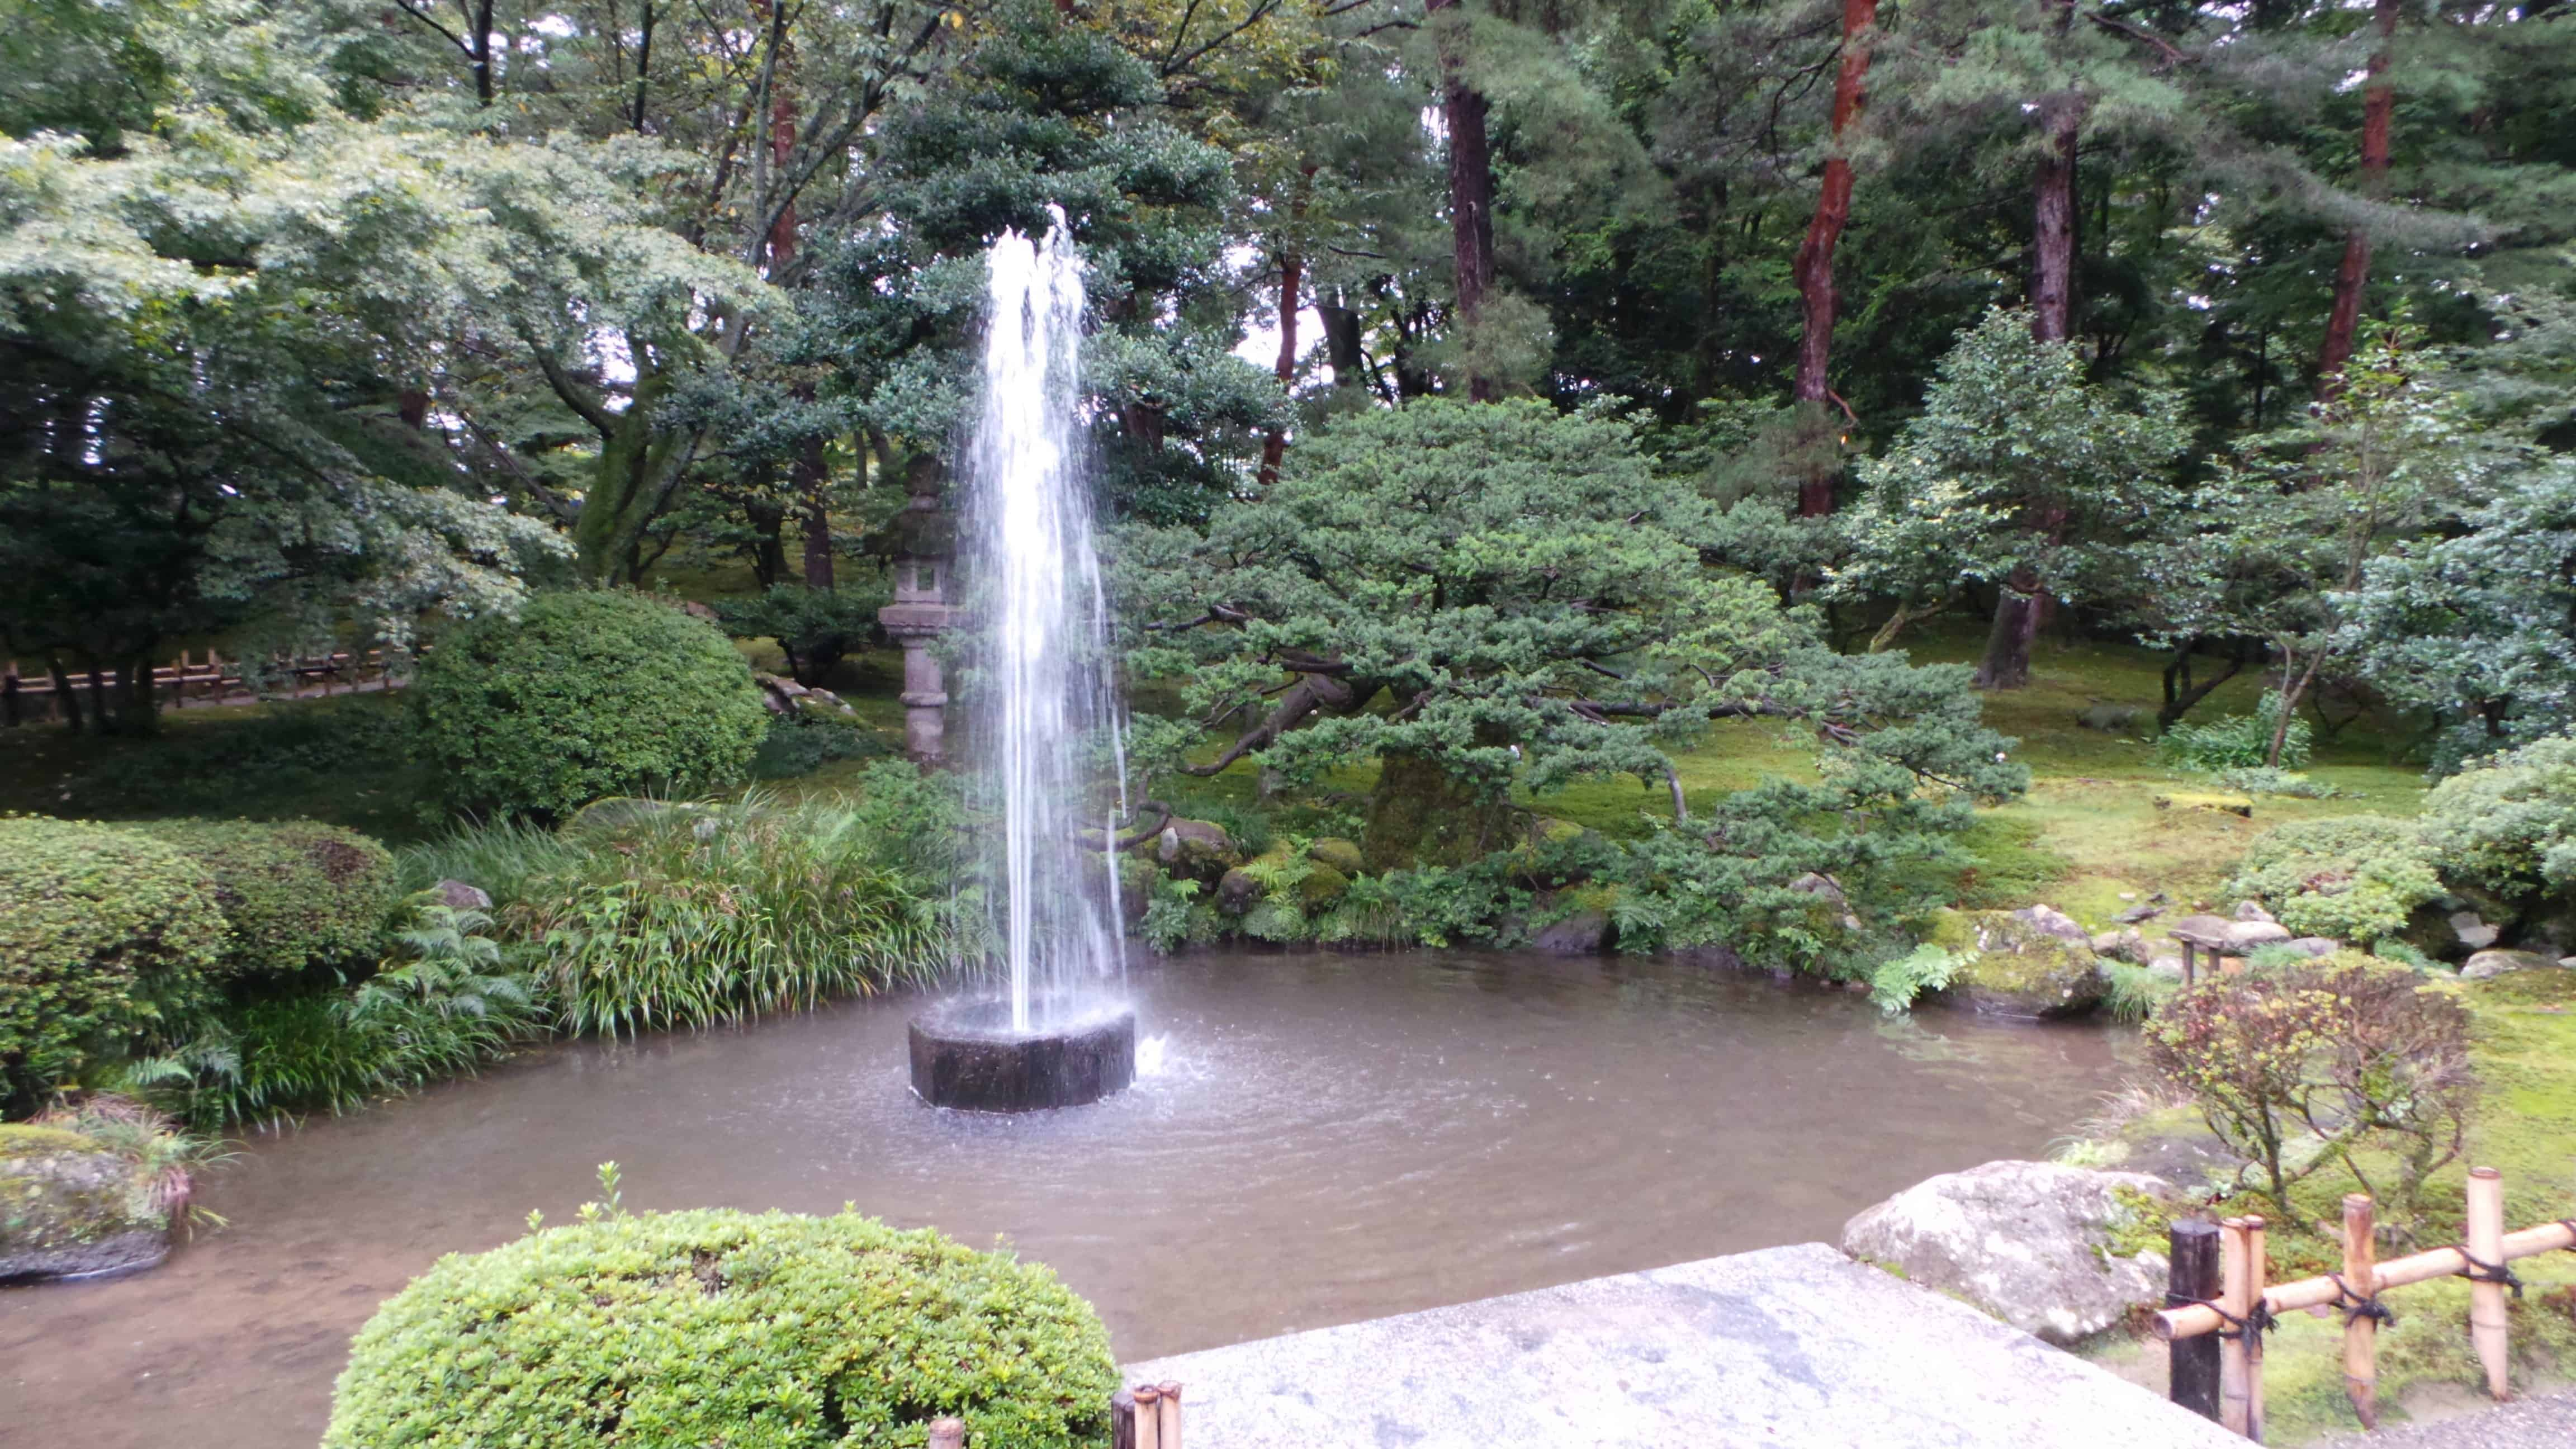 Oldest Natural Powered Fountain in Japan